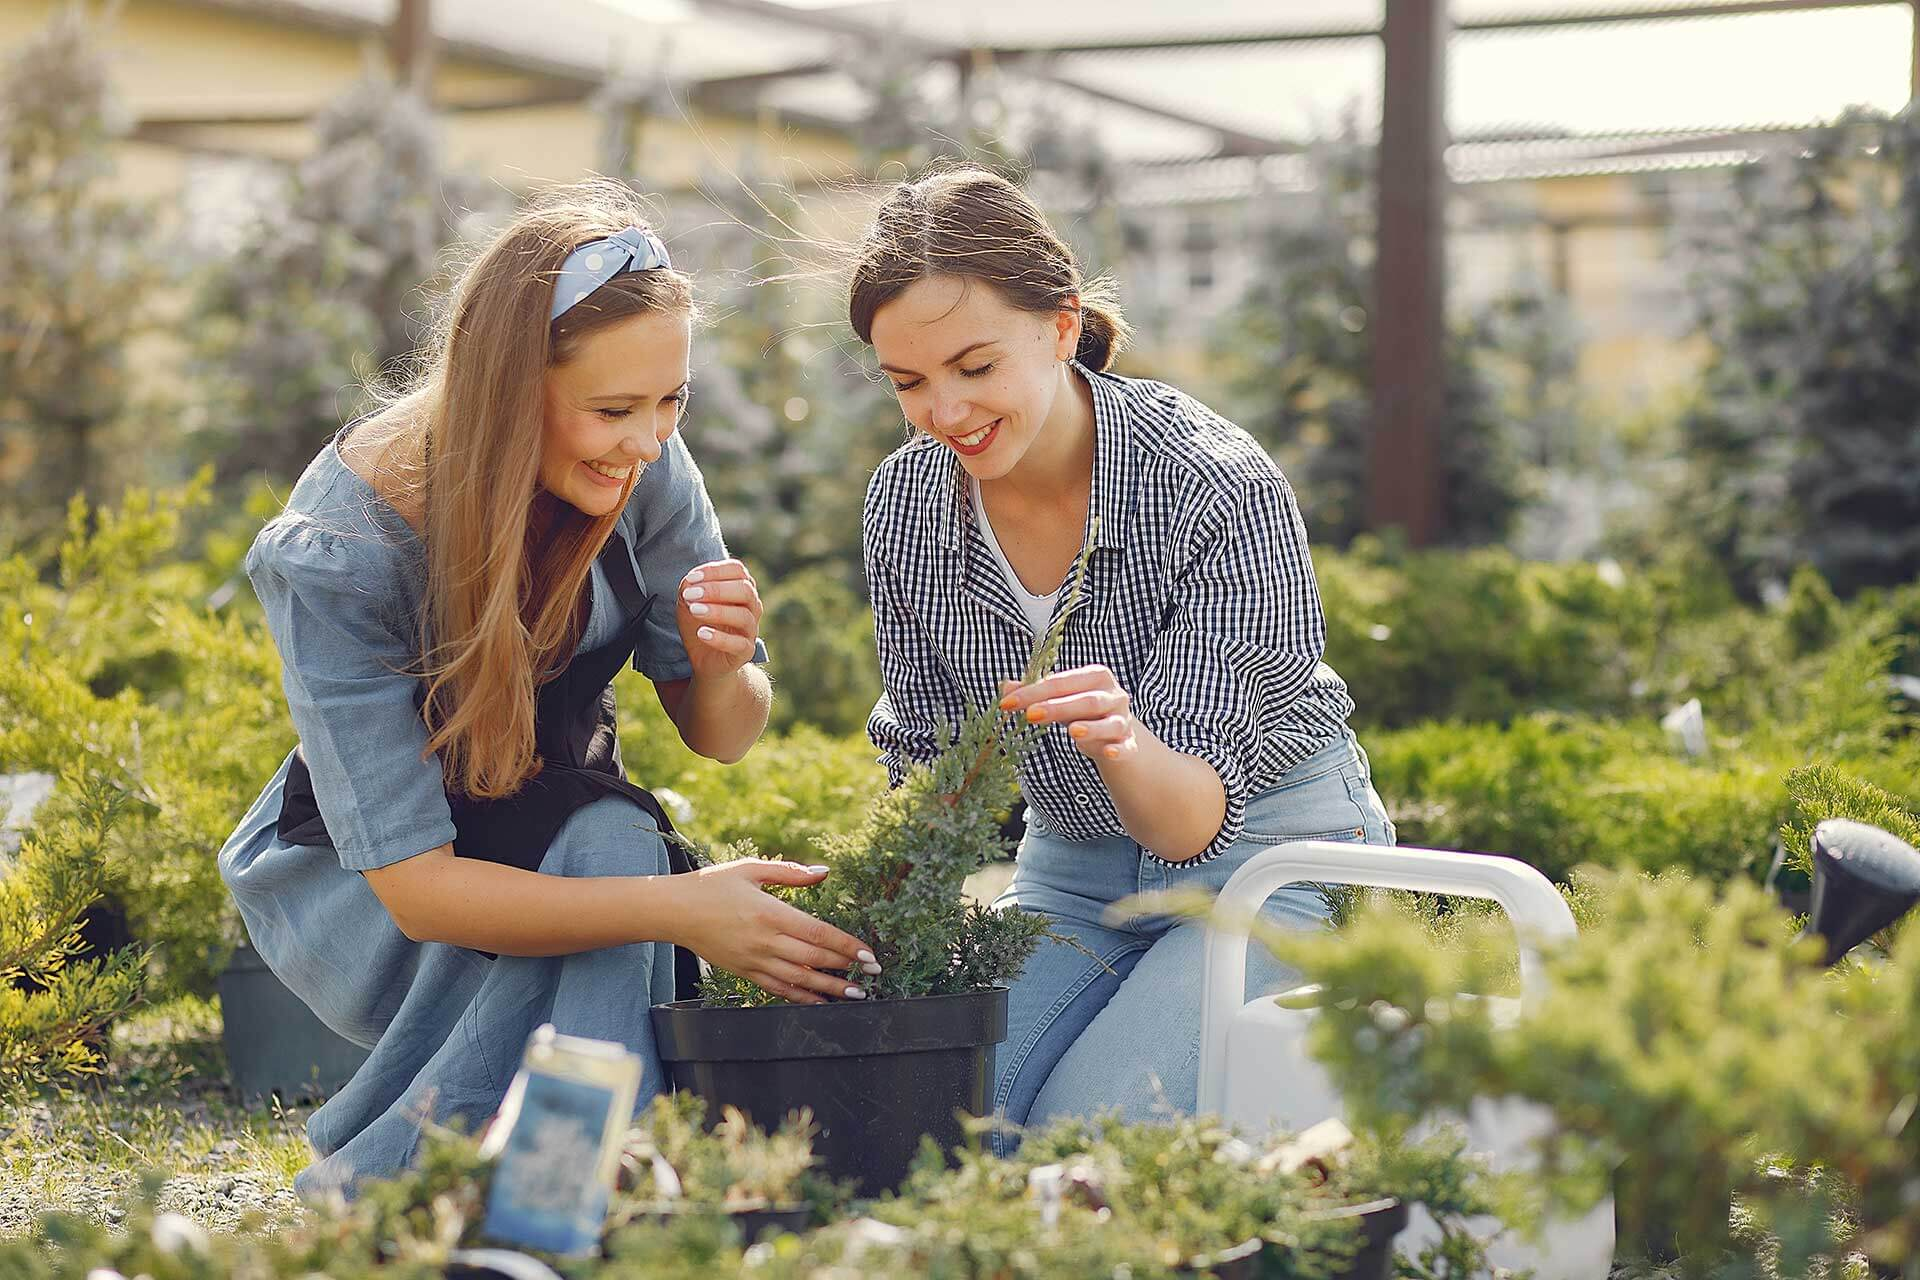 Women Working In A Greenhouse With A Flower Pots